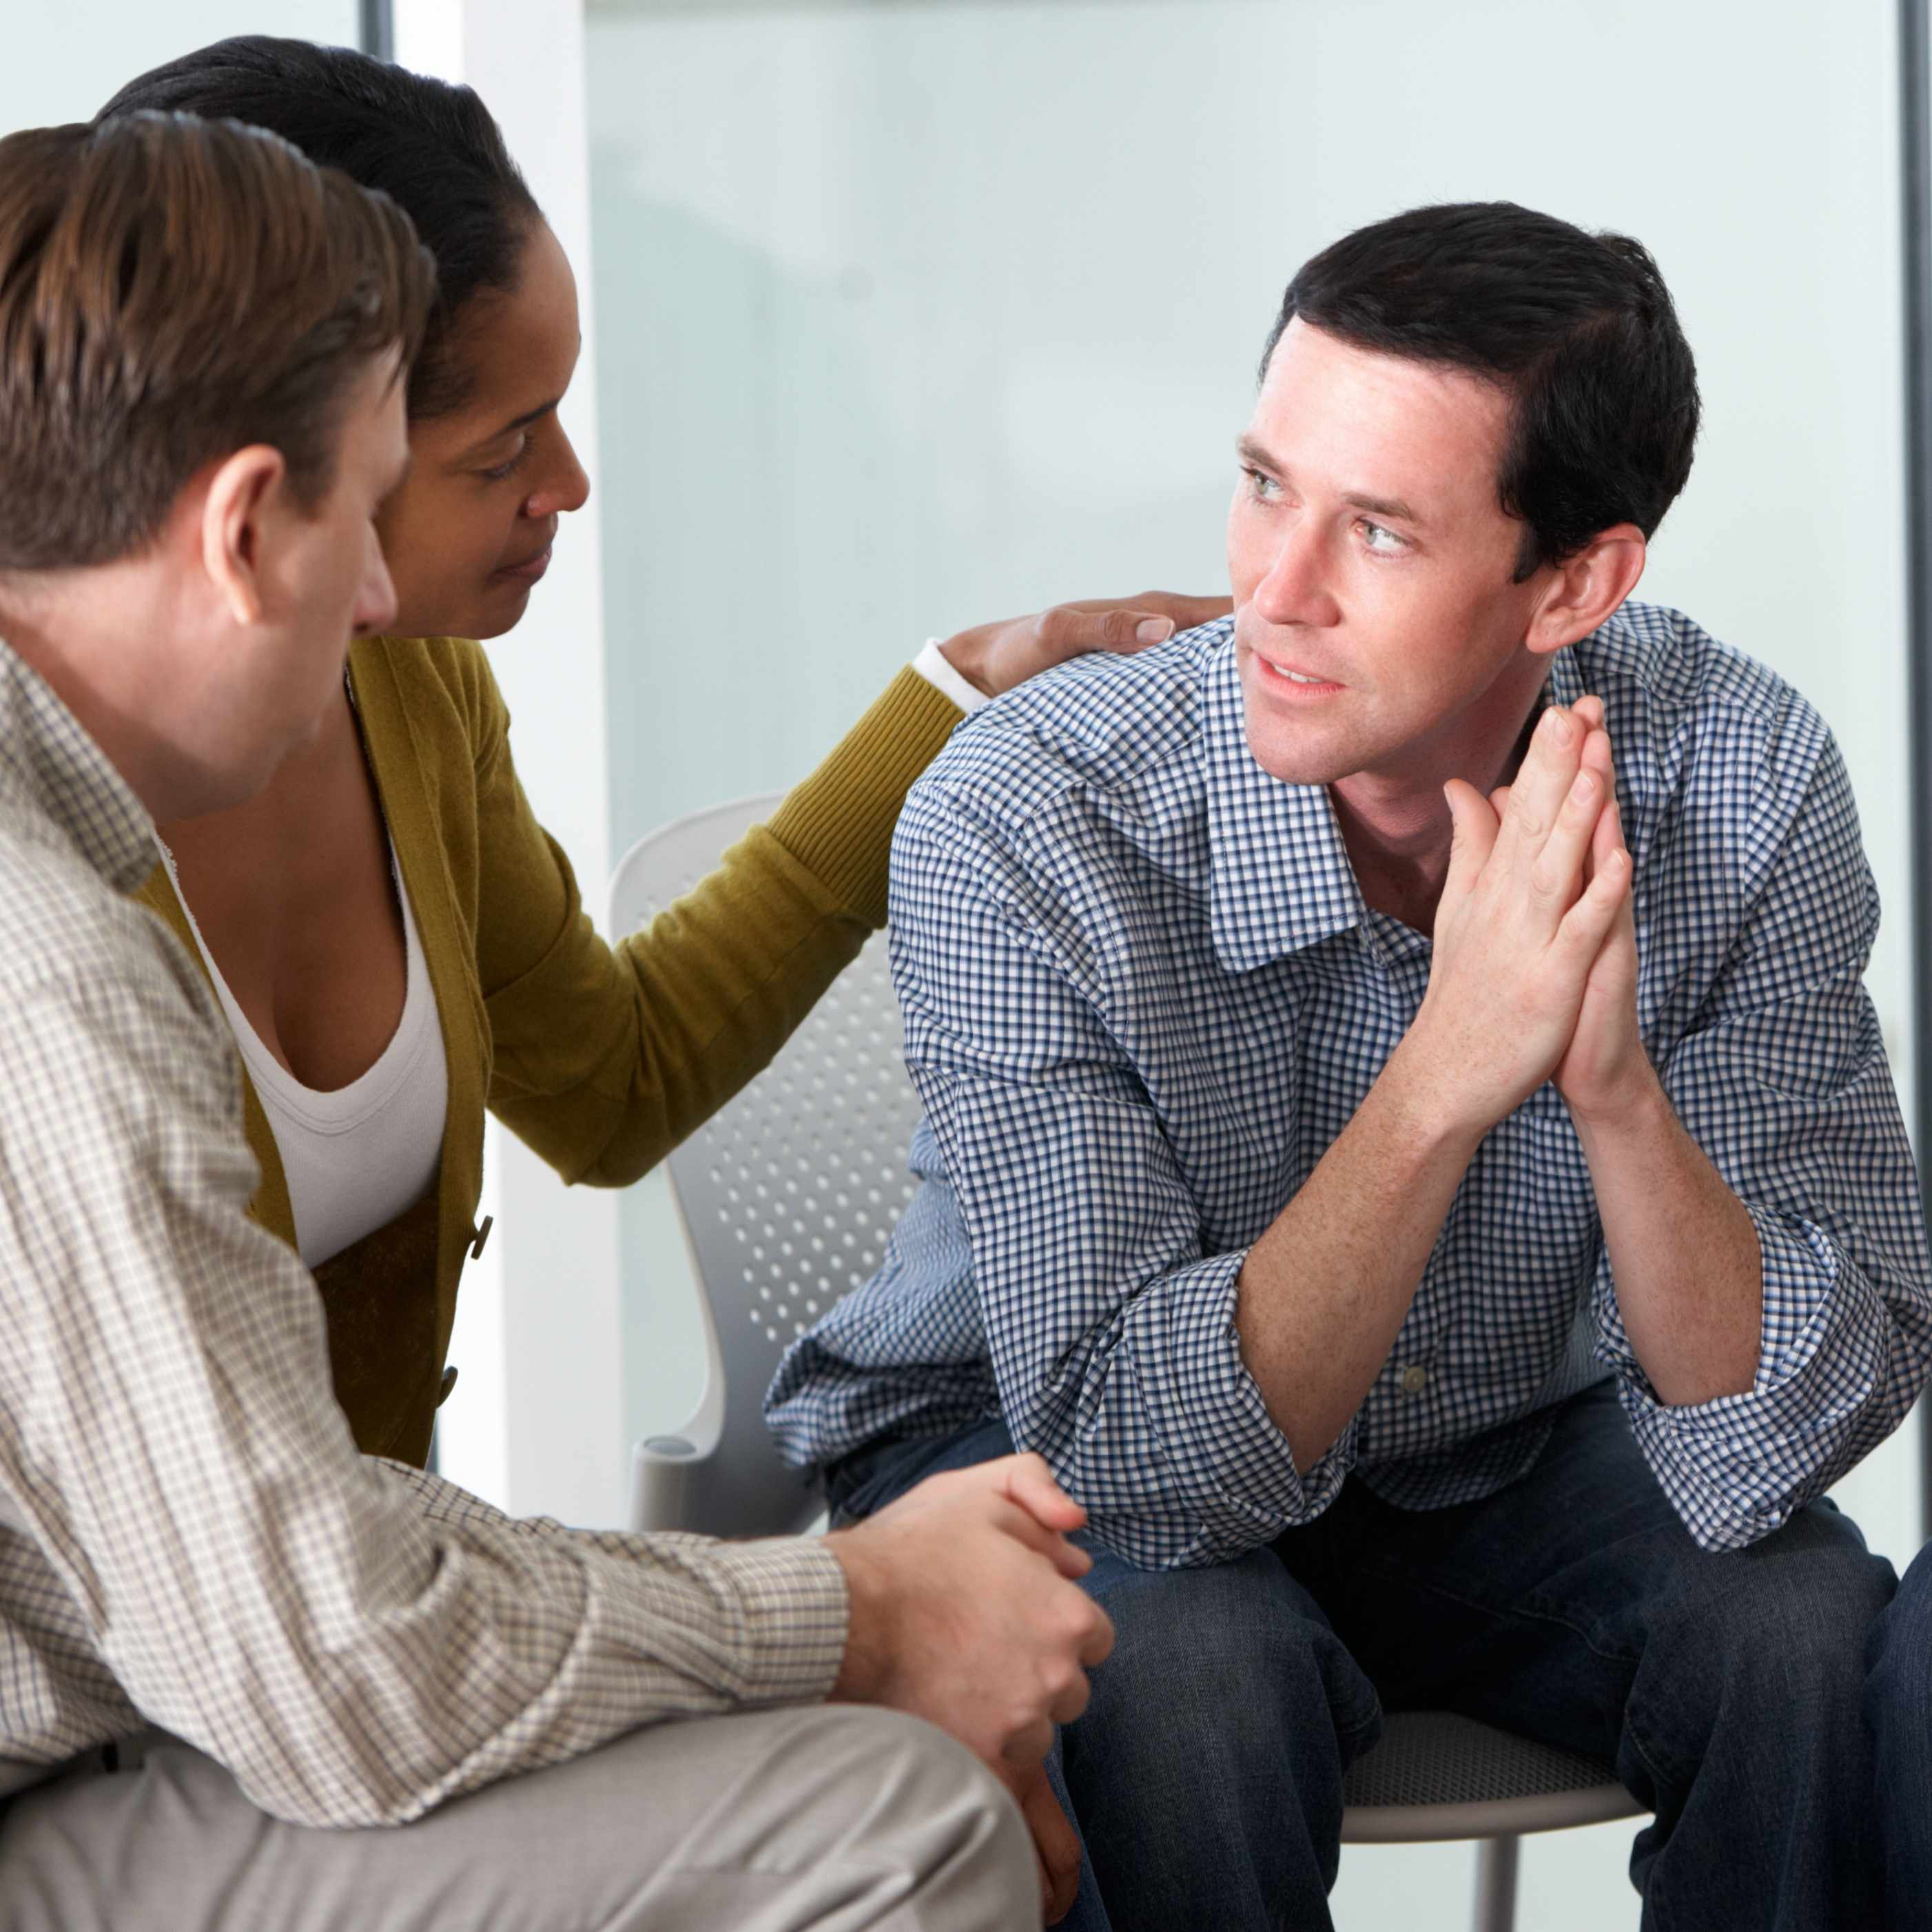 a group of people in a counseling session discussing problems with depression or addiction